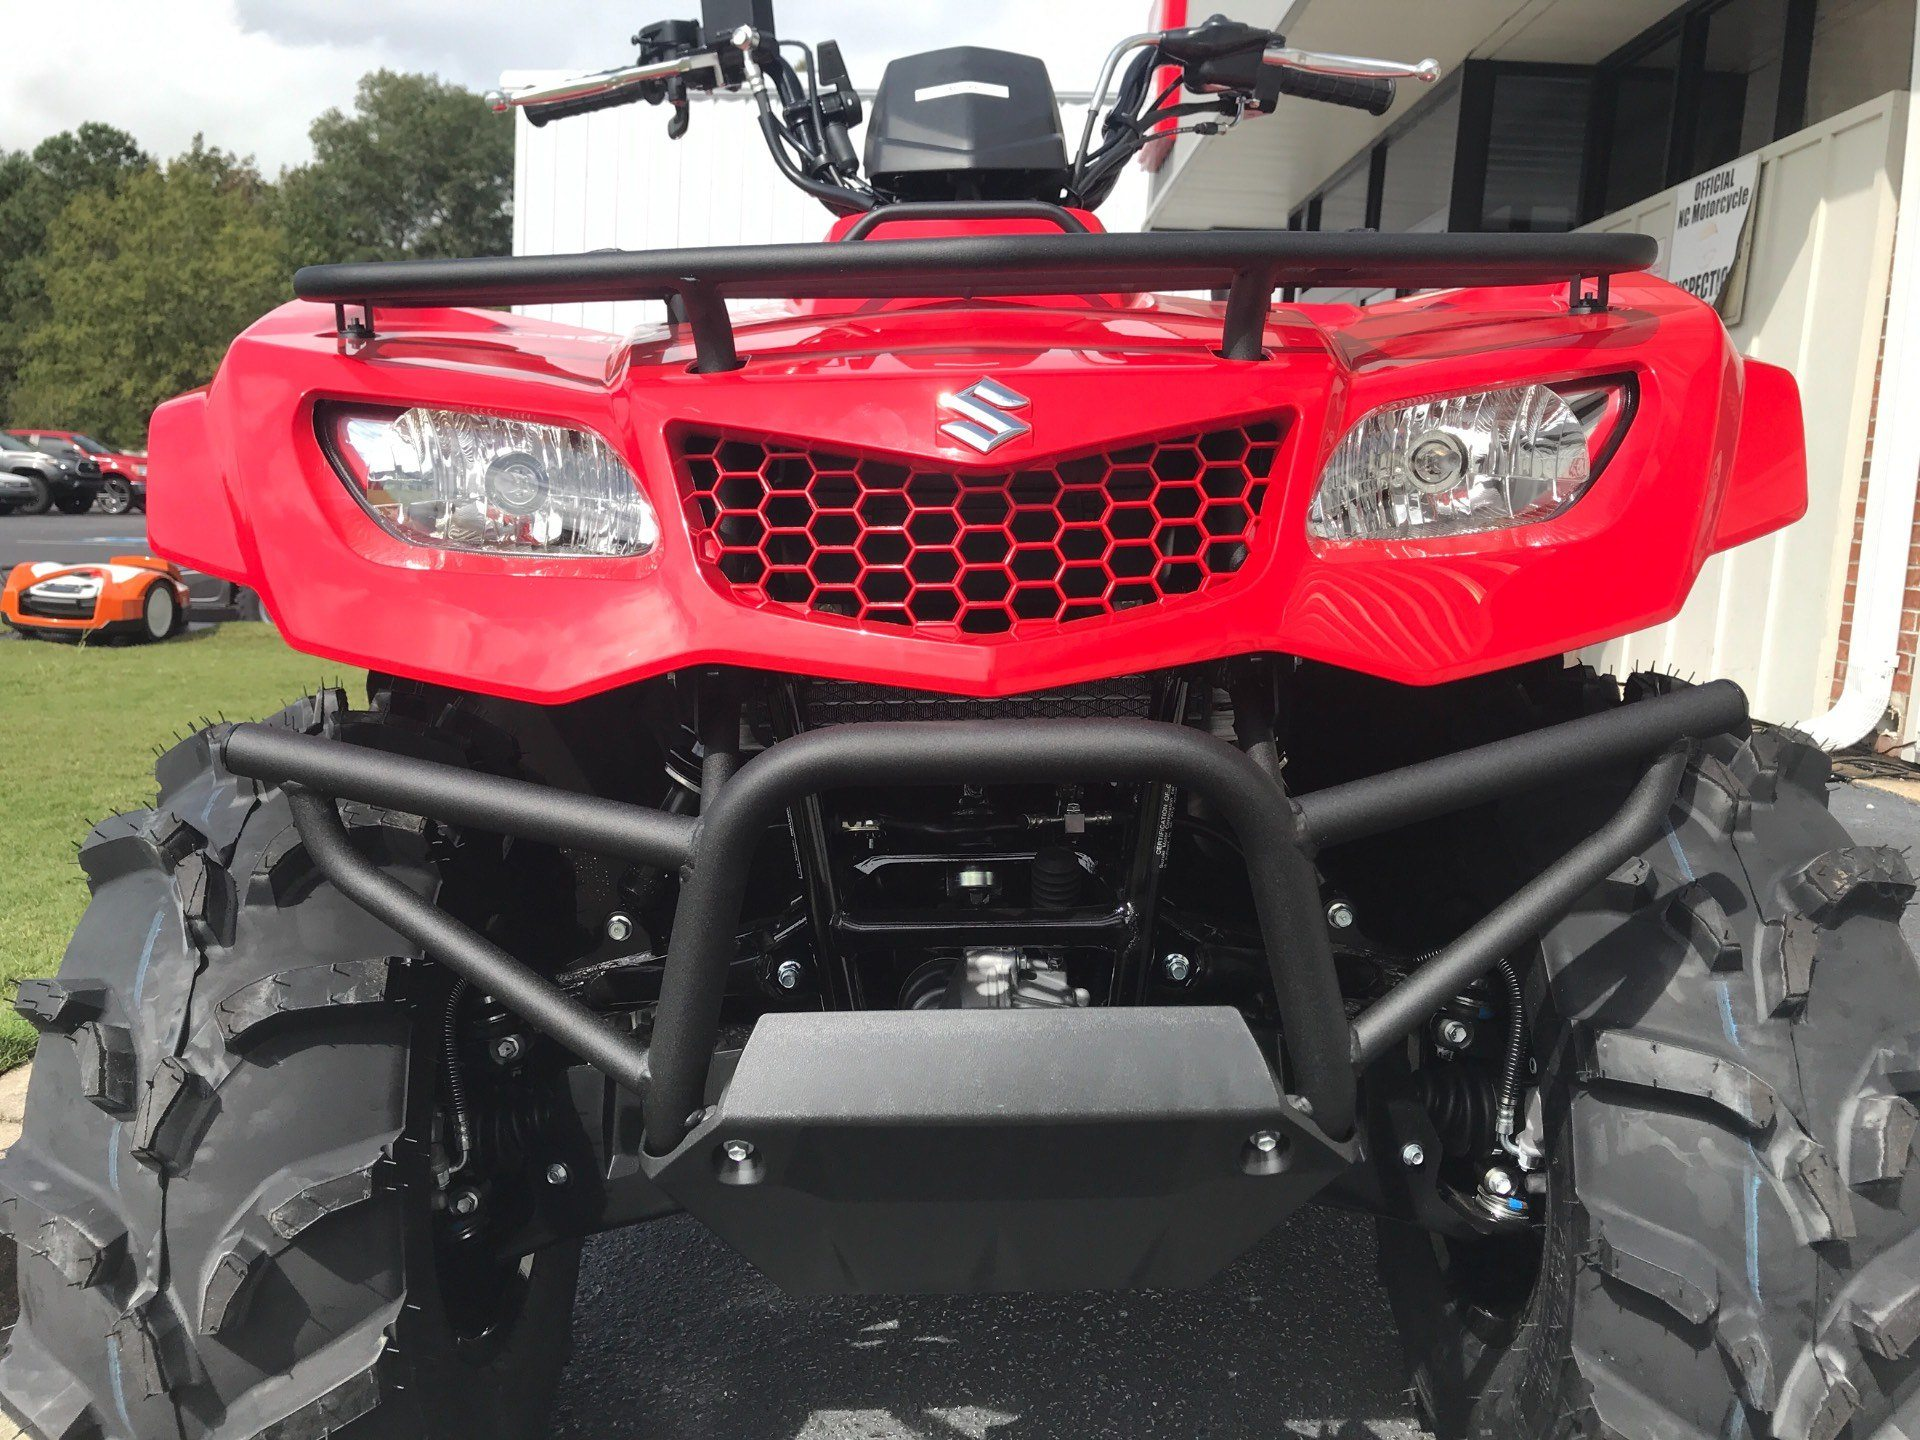 2021 Suzuki KingQuad 400ASi in Greenville, North Carolina - Photo 9